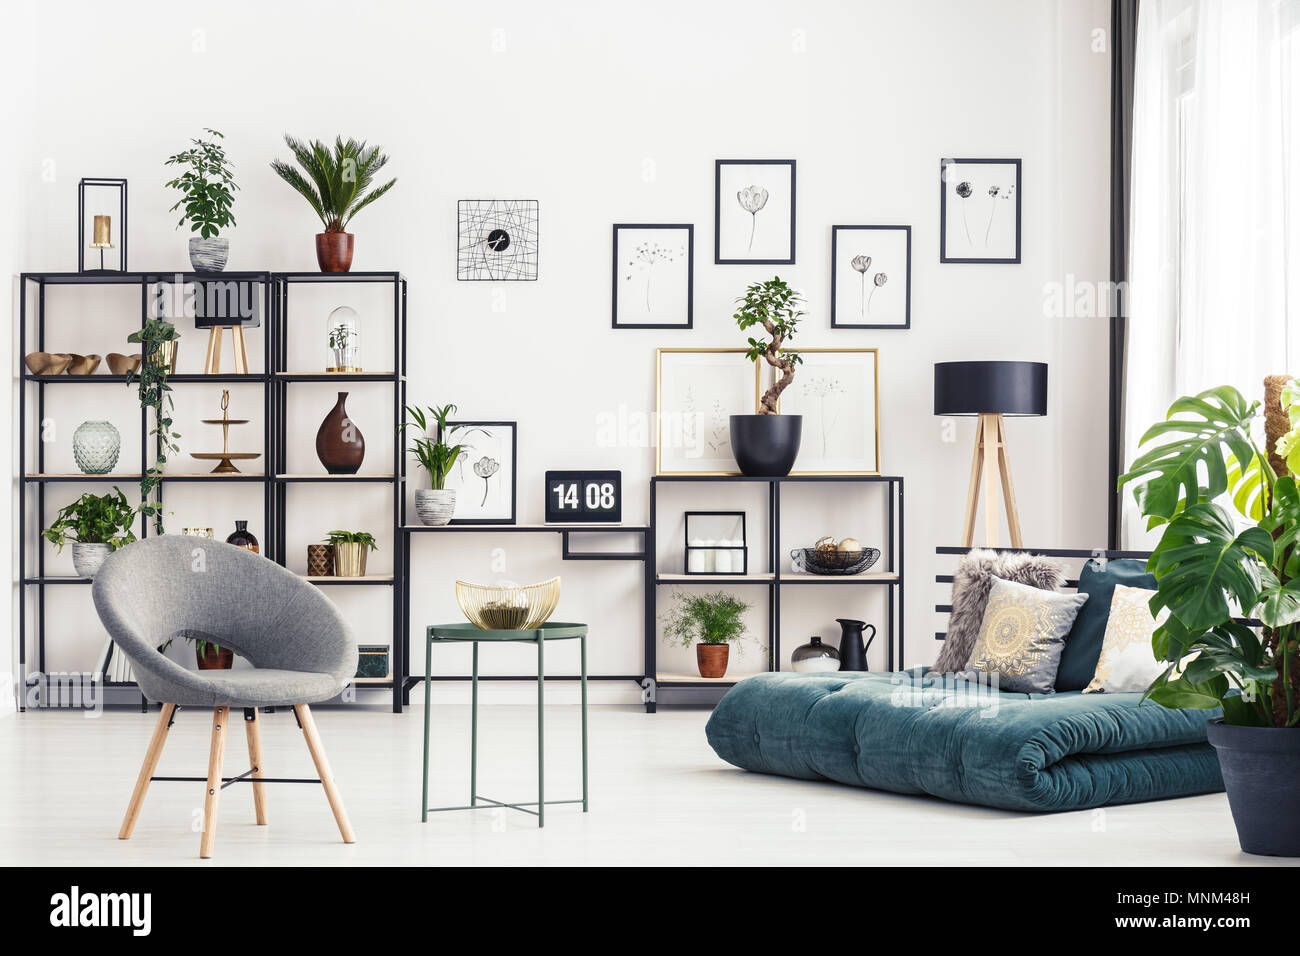 Entre Table fauteuil gris et vert futon dans home office interior with laptop on desk Photo Stock